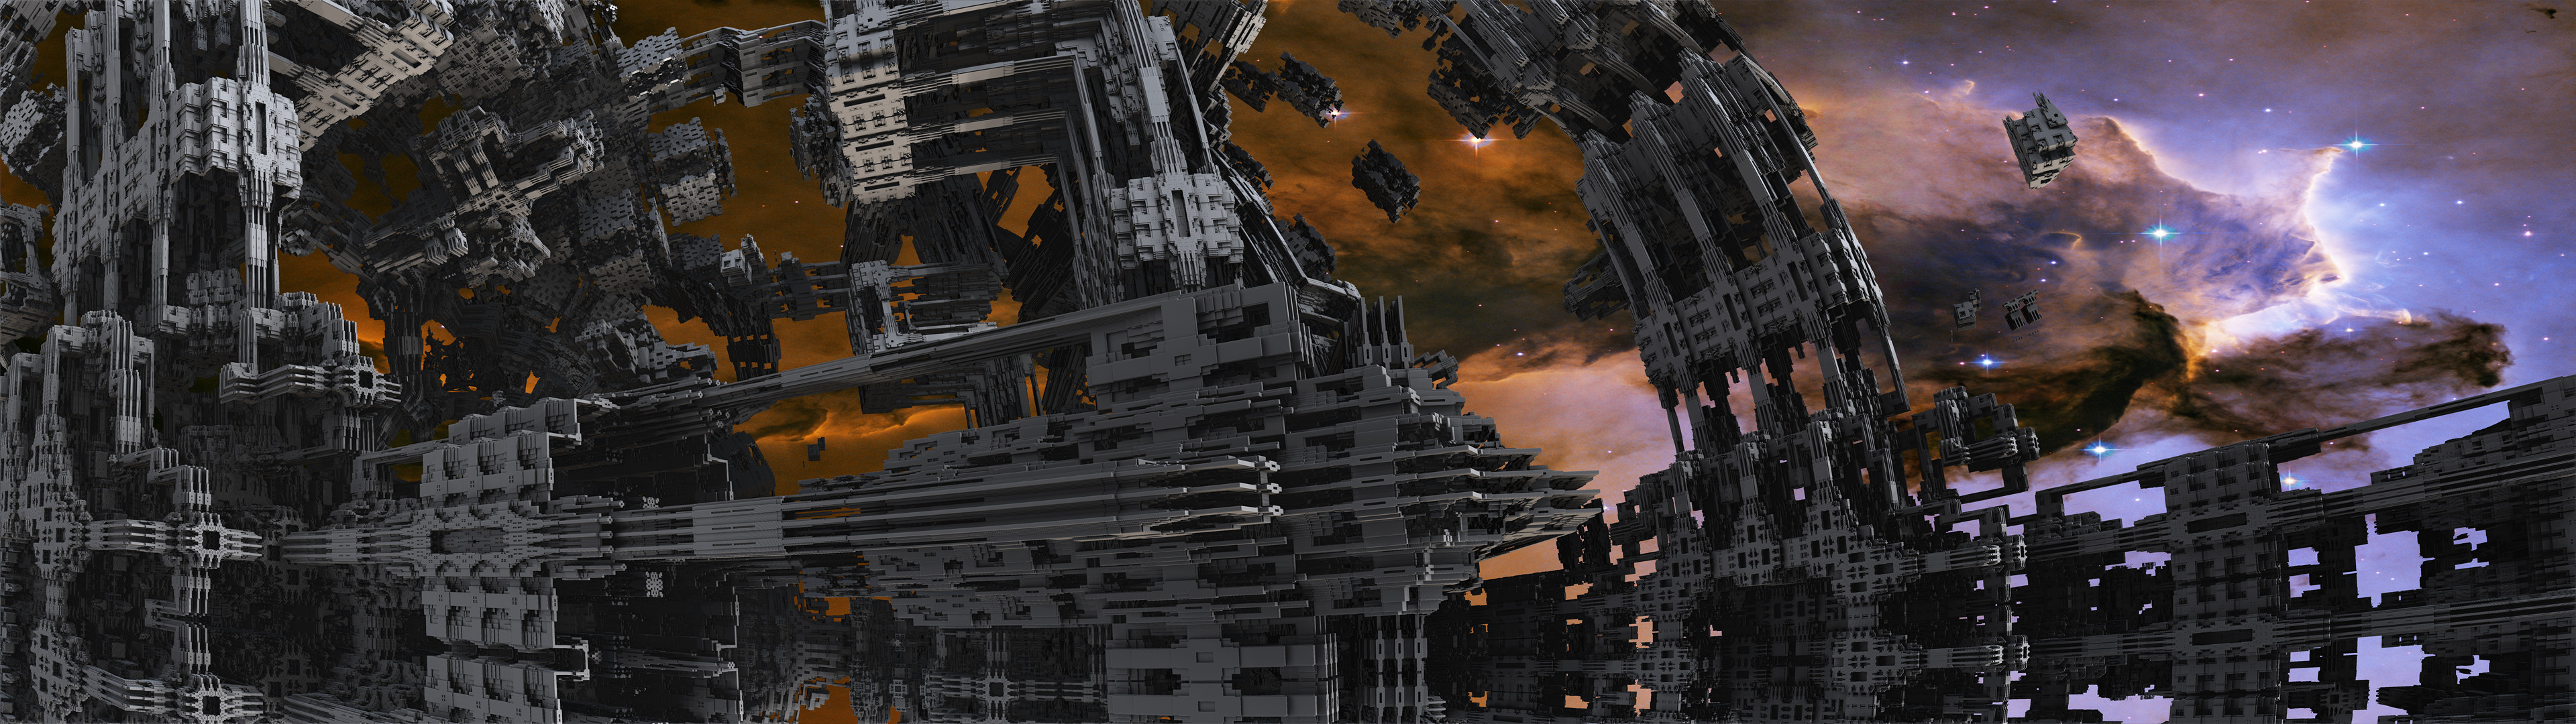 Dual Display Fractal Sci-fi by GrahamSym